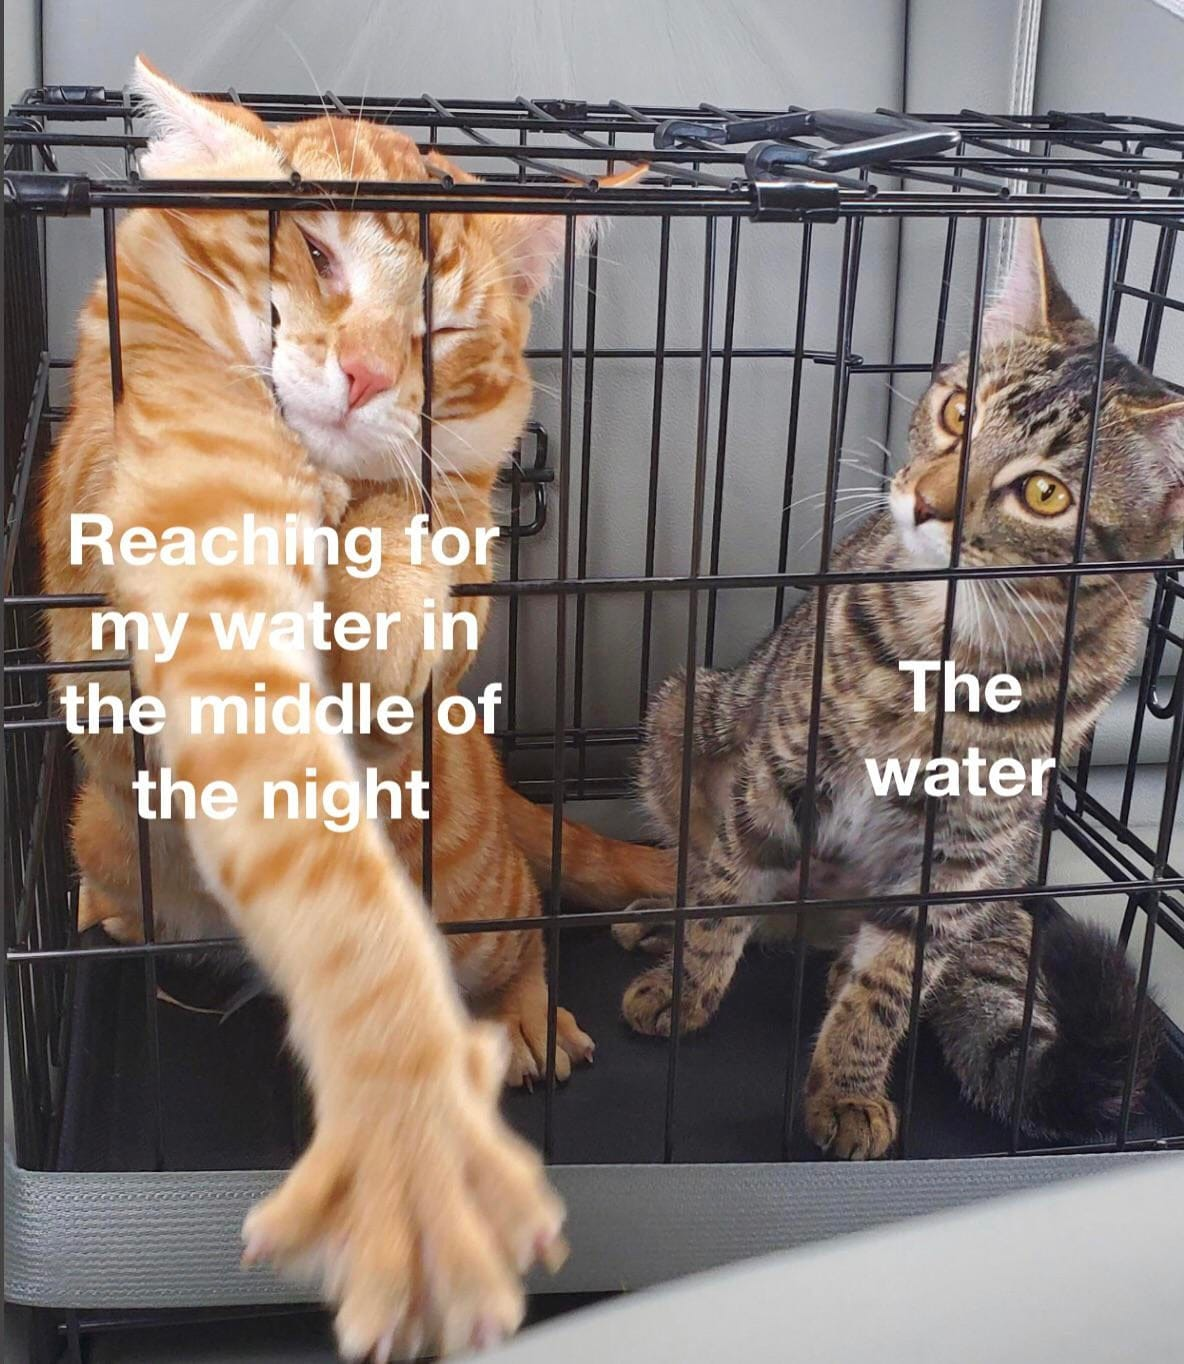 Reaching for my water in the middle of the night